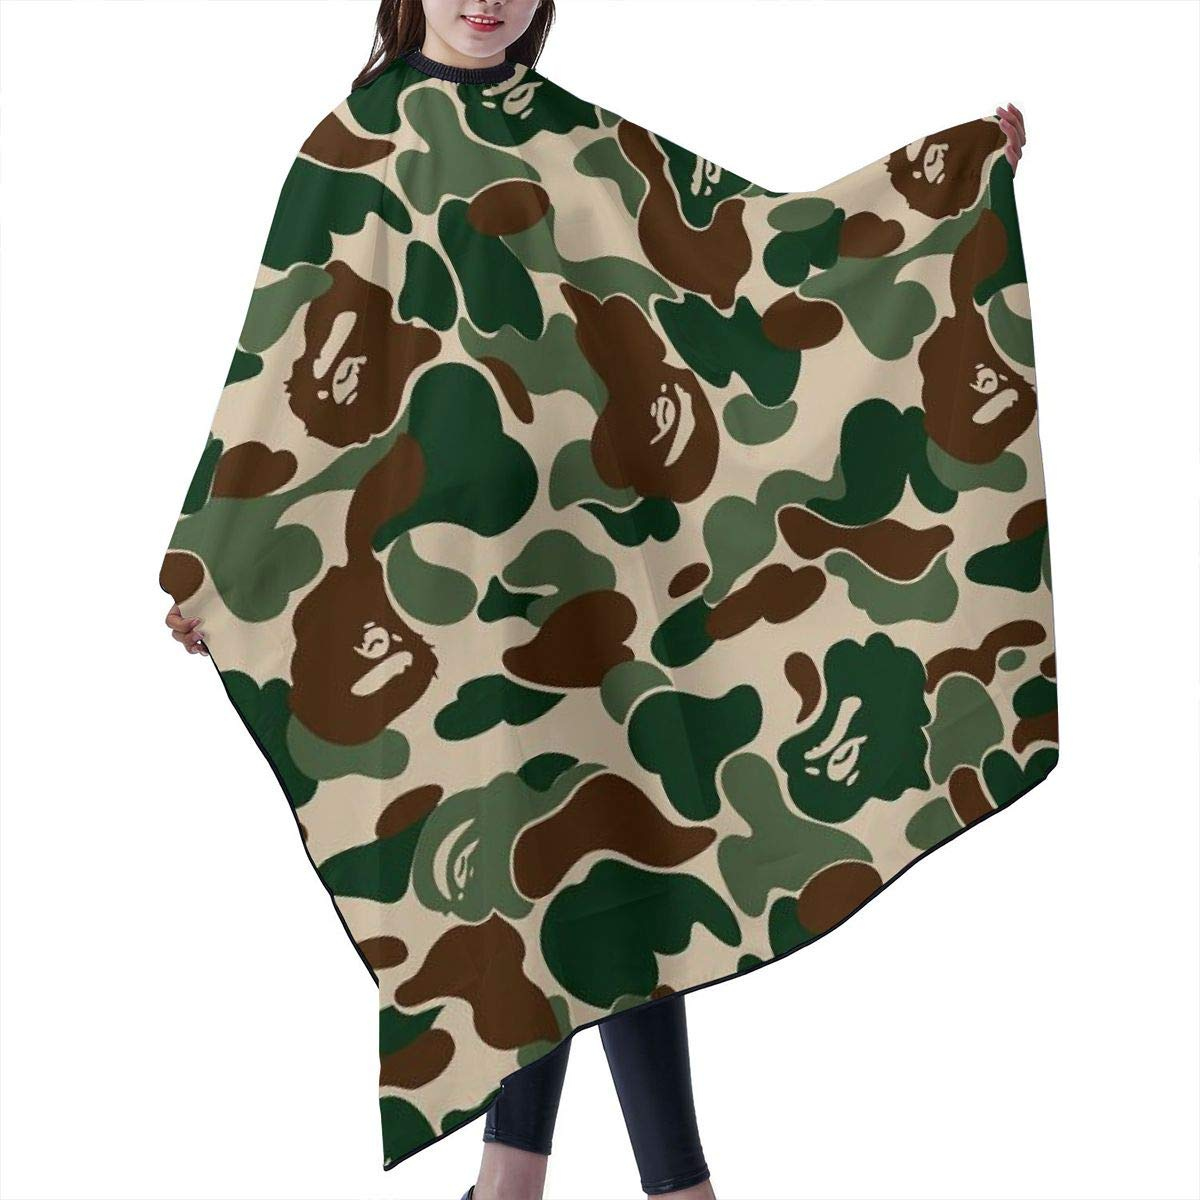 STWINW Professional Barber Supplies Tool Green camouflage Pattern Cape Cover Cloak Hair Dyed Hair Waterproof Cloth Anti-Static Hairdressing Haircut Apron Hair Dressing Gown Cape by STWINW